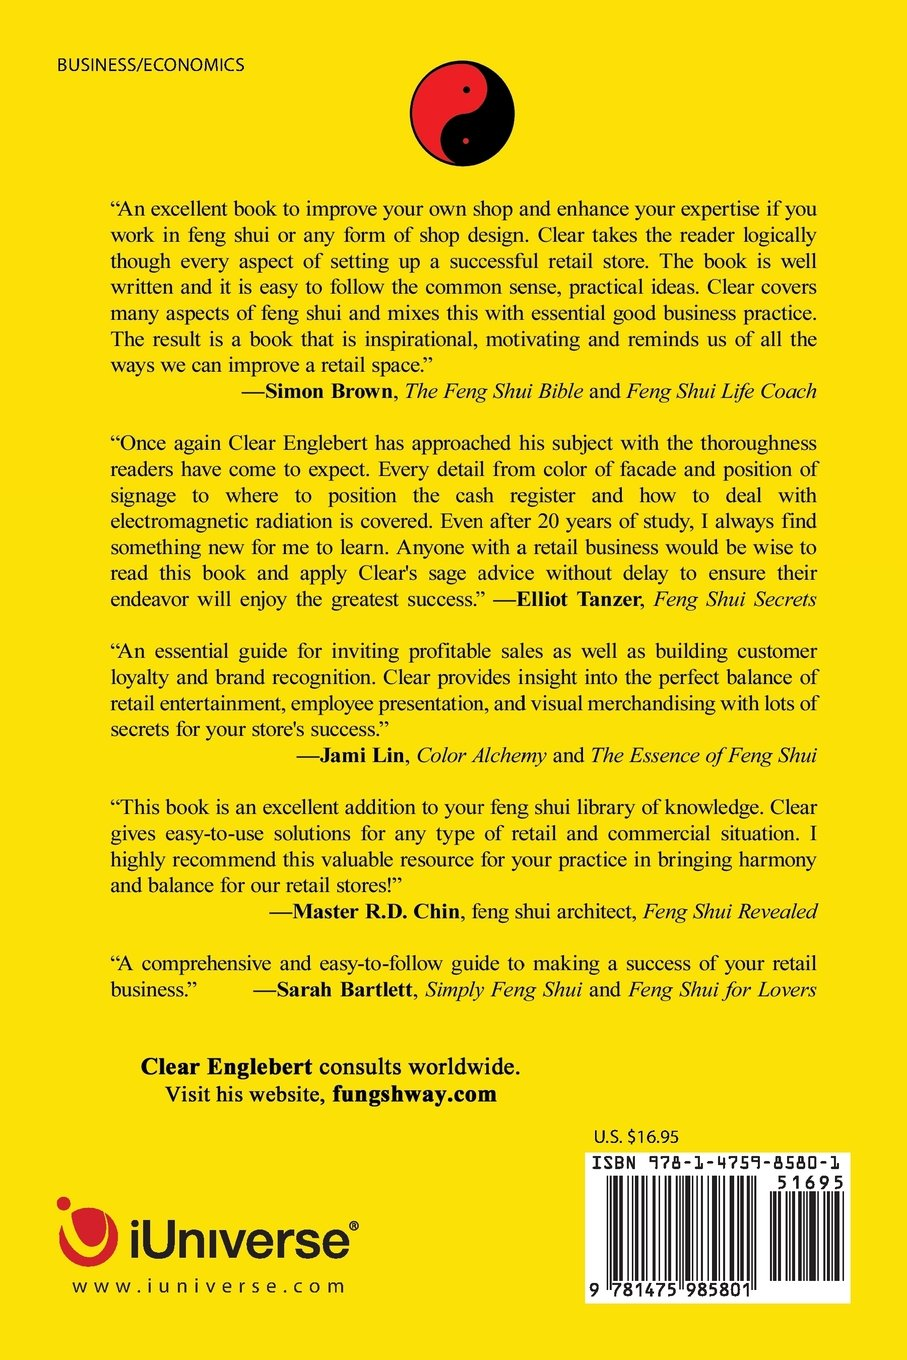 an essay on the application of feng shui Book report on clear your clutter with feng shui - essay example let us find you another essay on topic book report on clear your clutter with feng shui.